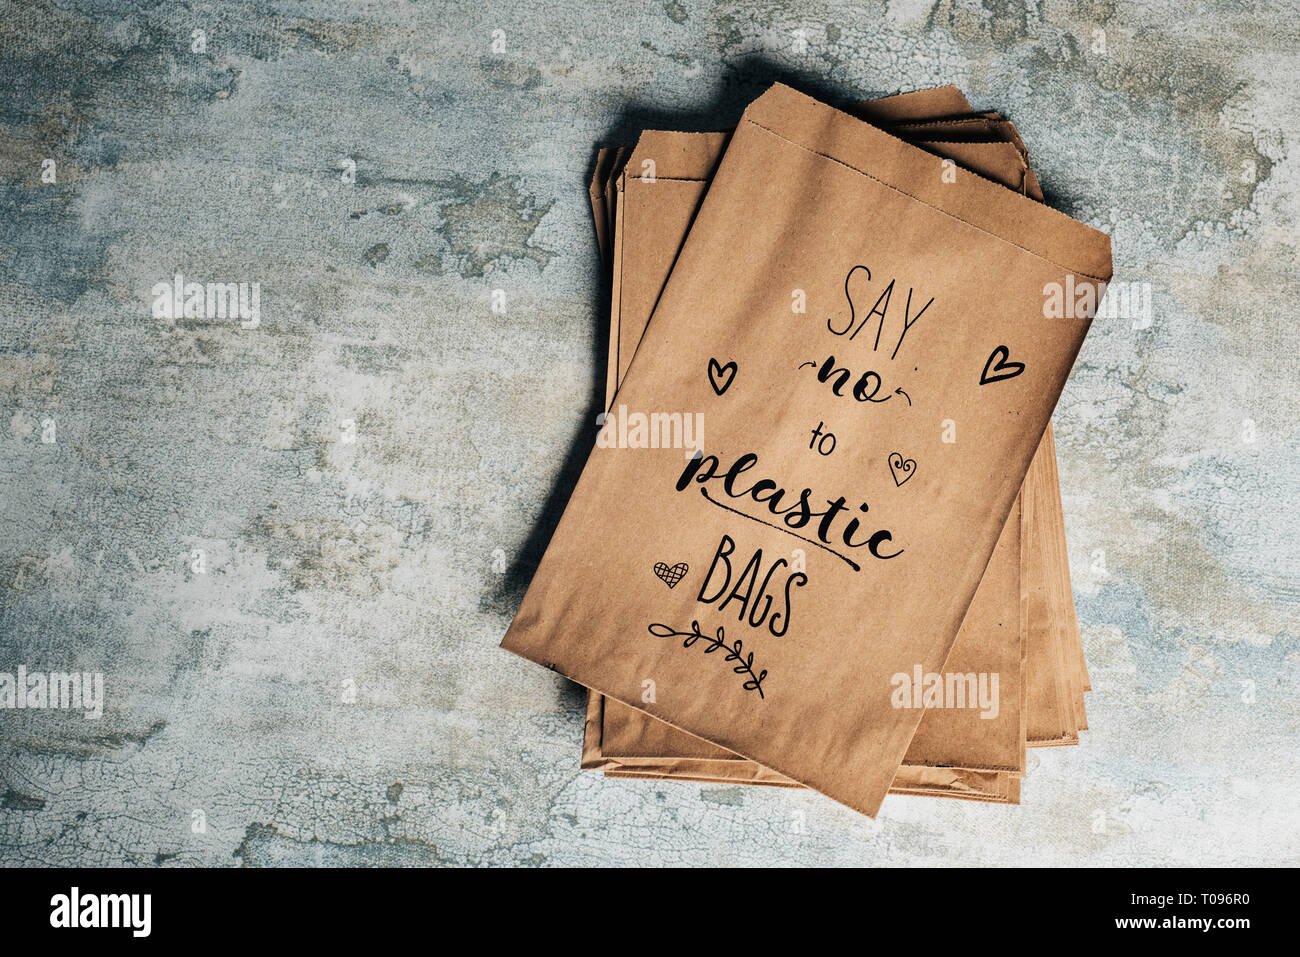 high angle view of some brown paper bags with the text say no to plastic bags written in the top one, on a stone surface - Stock Image